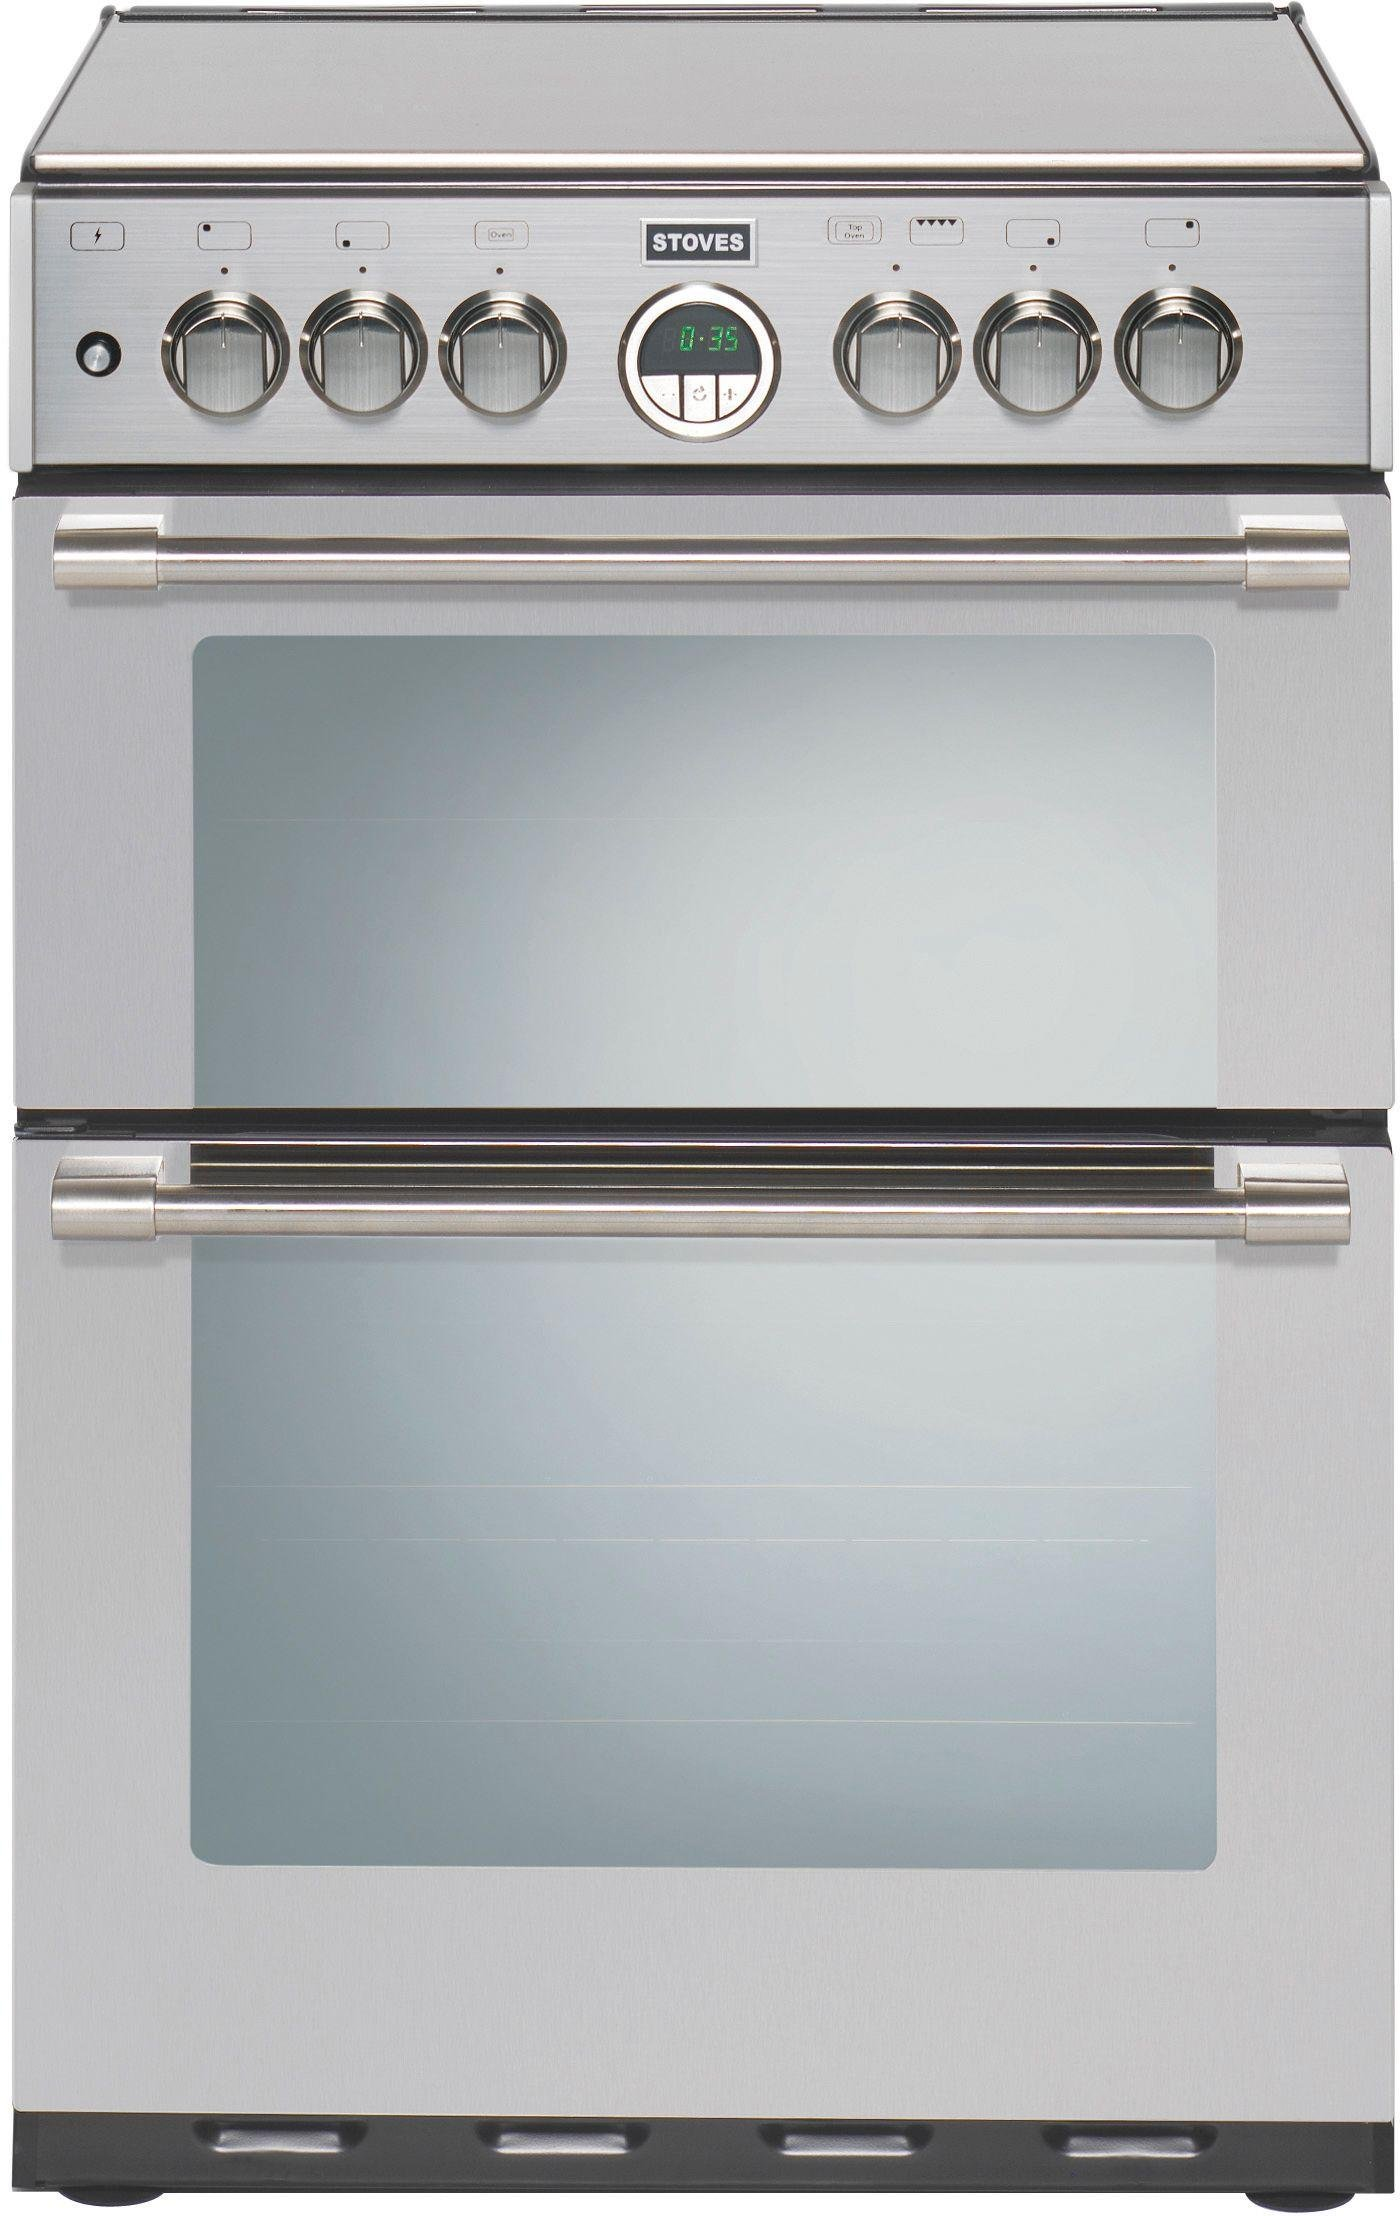 Stoves - Sterling 600G Double Gas Cooker - Stainless Steel